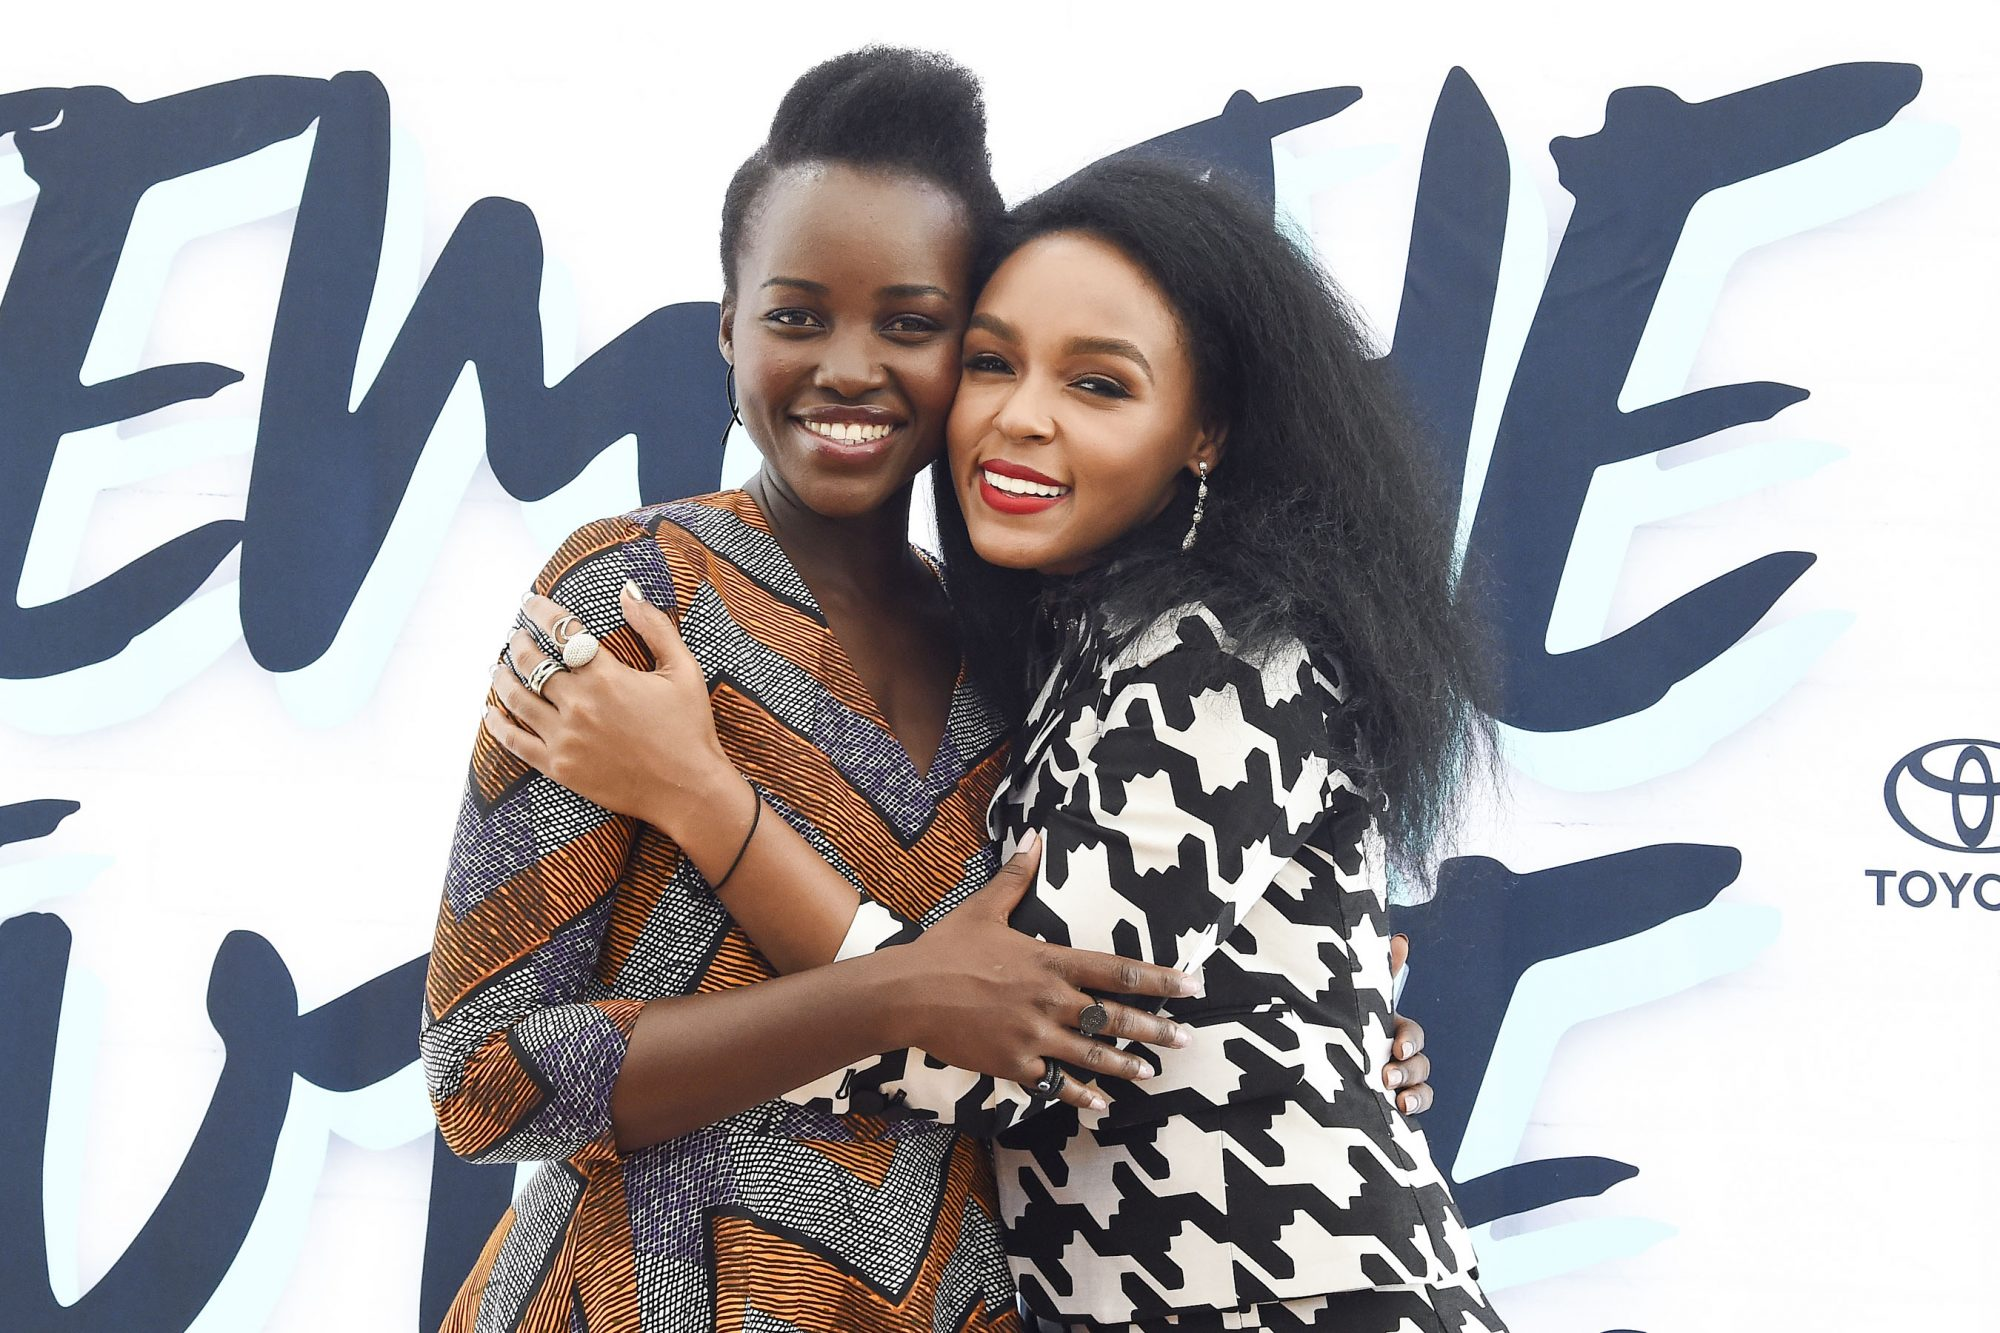 NEW YORK, NY - AUGUST 27: Lupita Nyong'o and Janelle Monae attend Fem The Future Brunch sponsored by Toyota on August 27, 2016 in New York City. (Photo by Ilya S. Savenok/Getty Images)